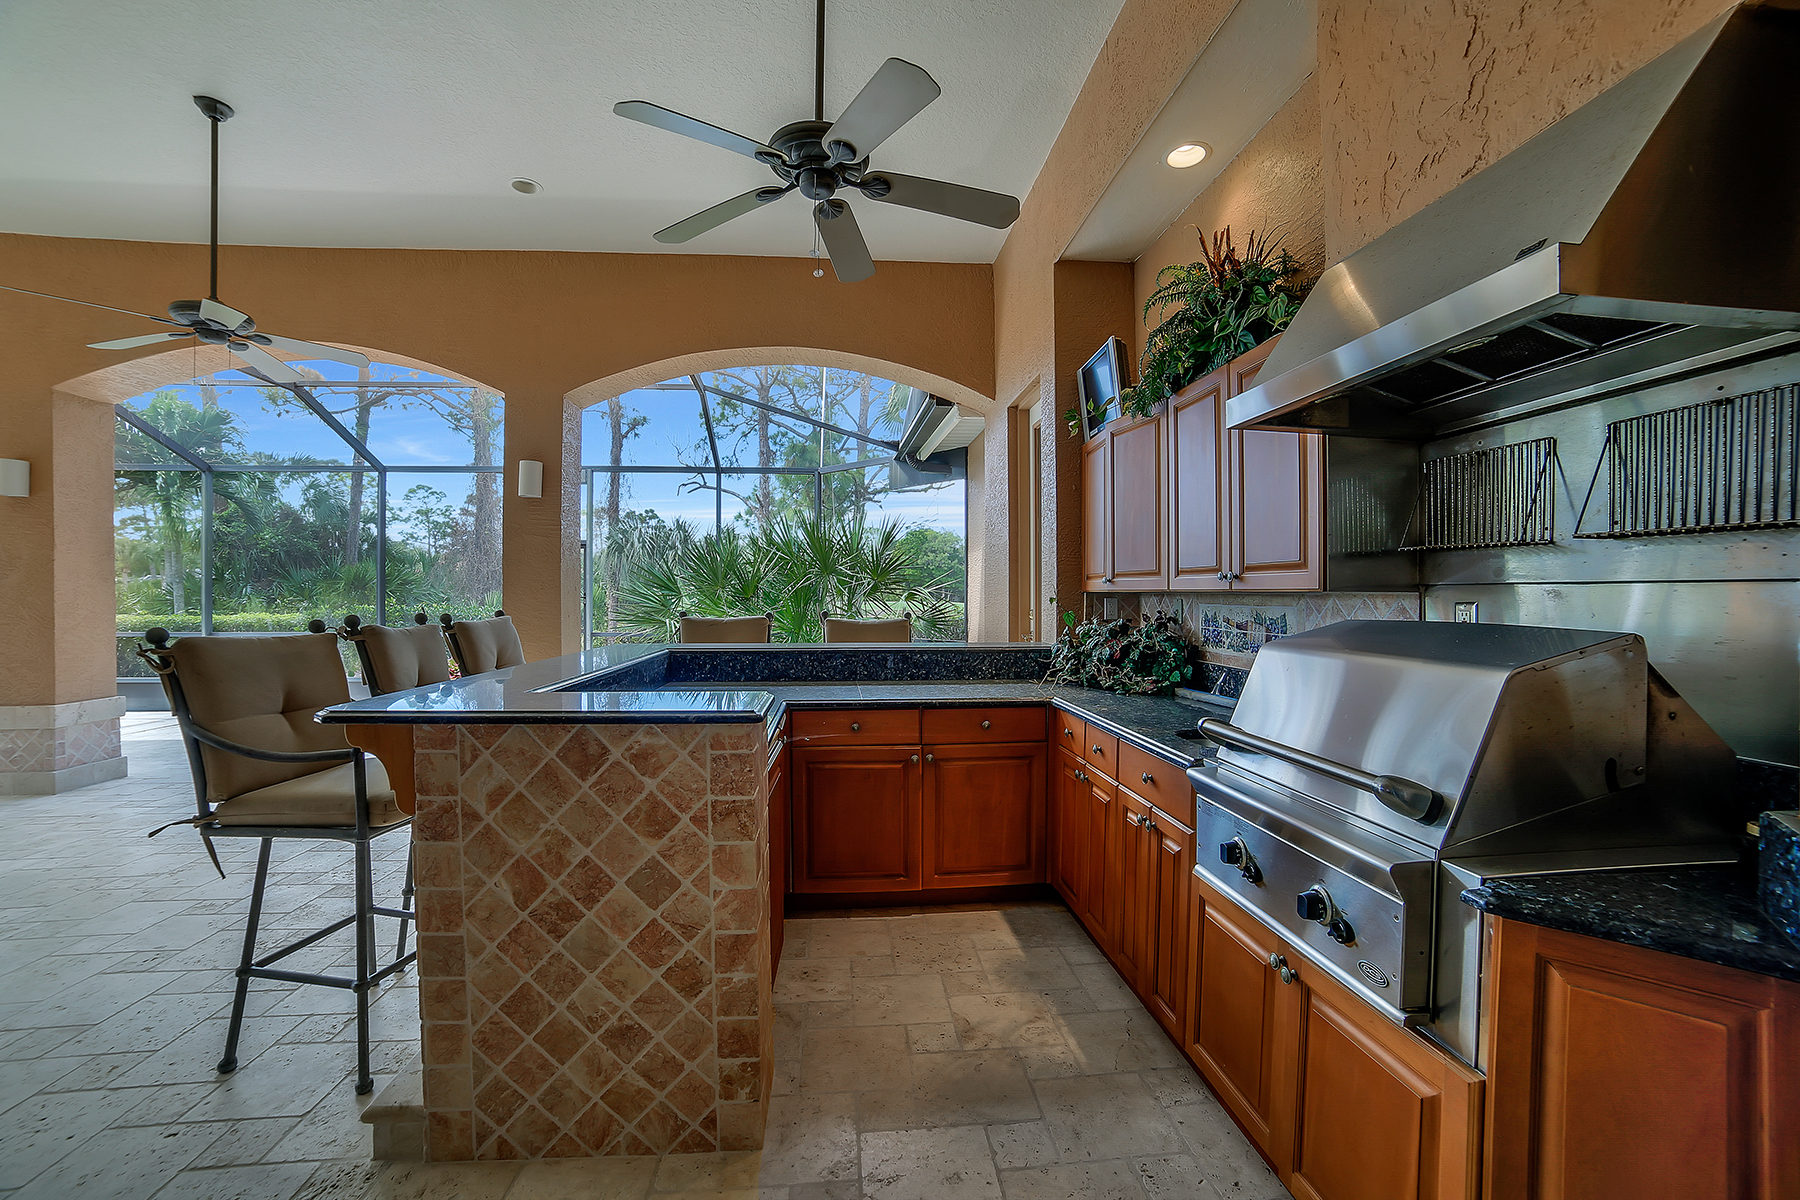 Additional photo for property listing at PELICAN LANDING - RIDGE 25086  Ridge Oak Dr,  Bonita Springs, Florida 34134 United States